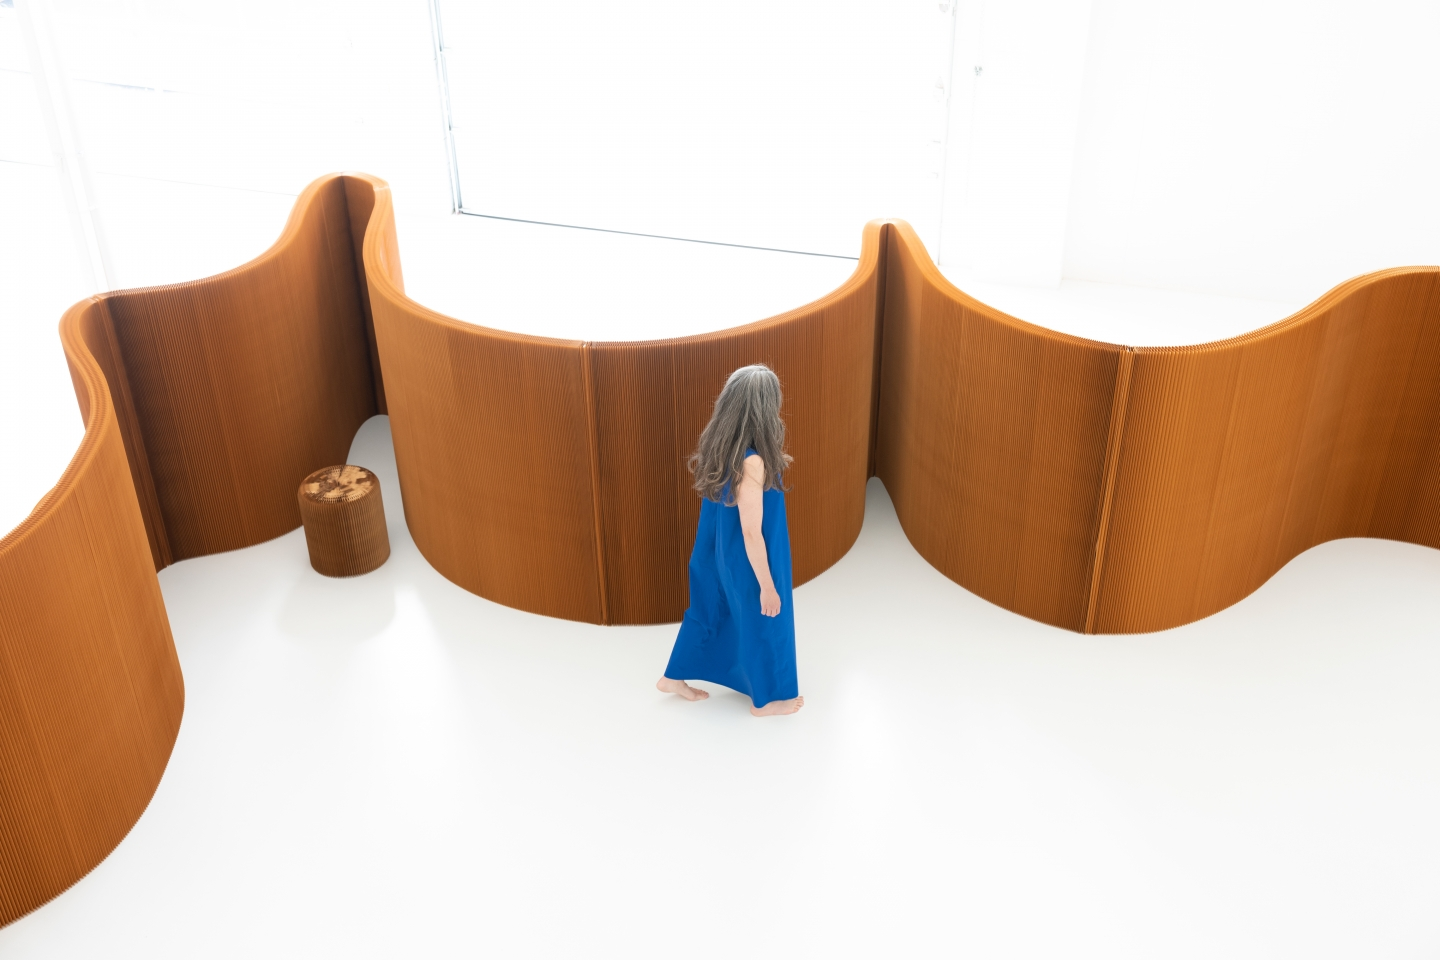 a woman explores paper furniture made into meeting room